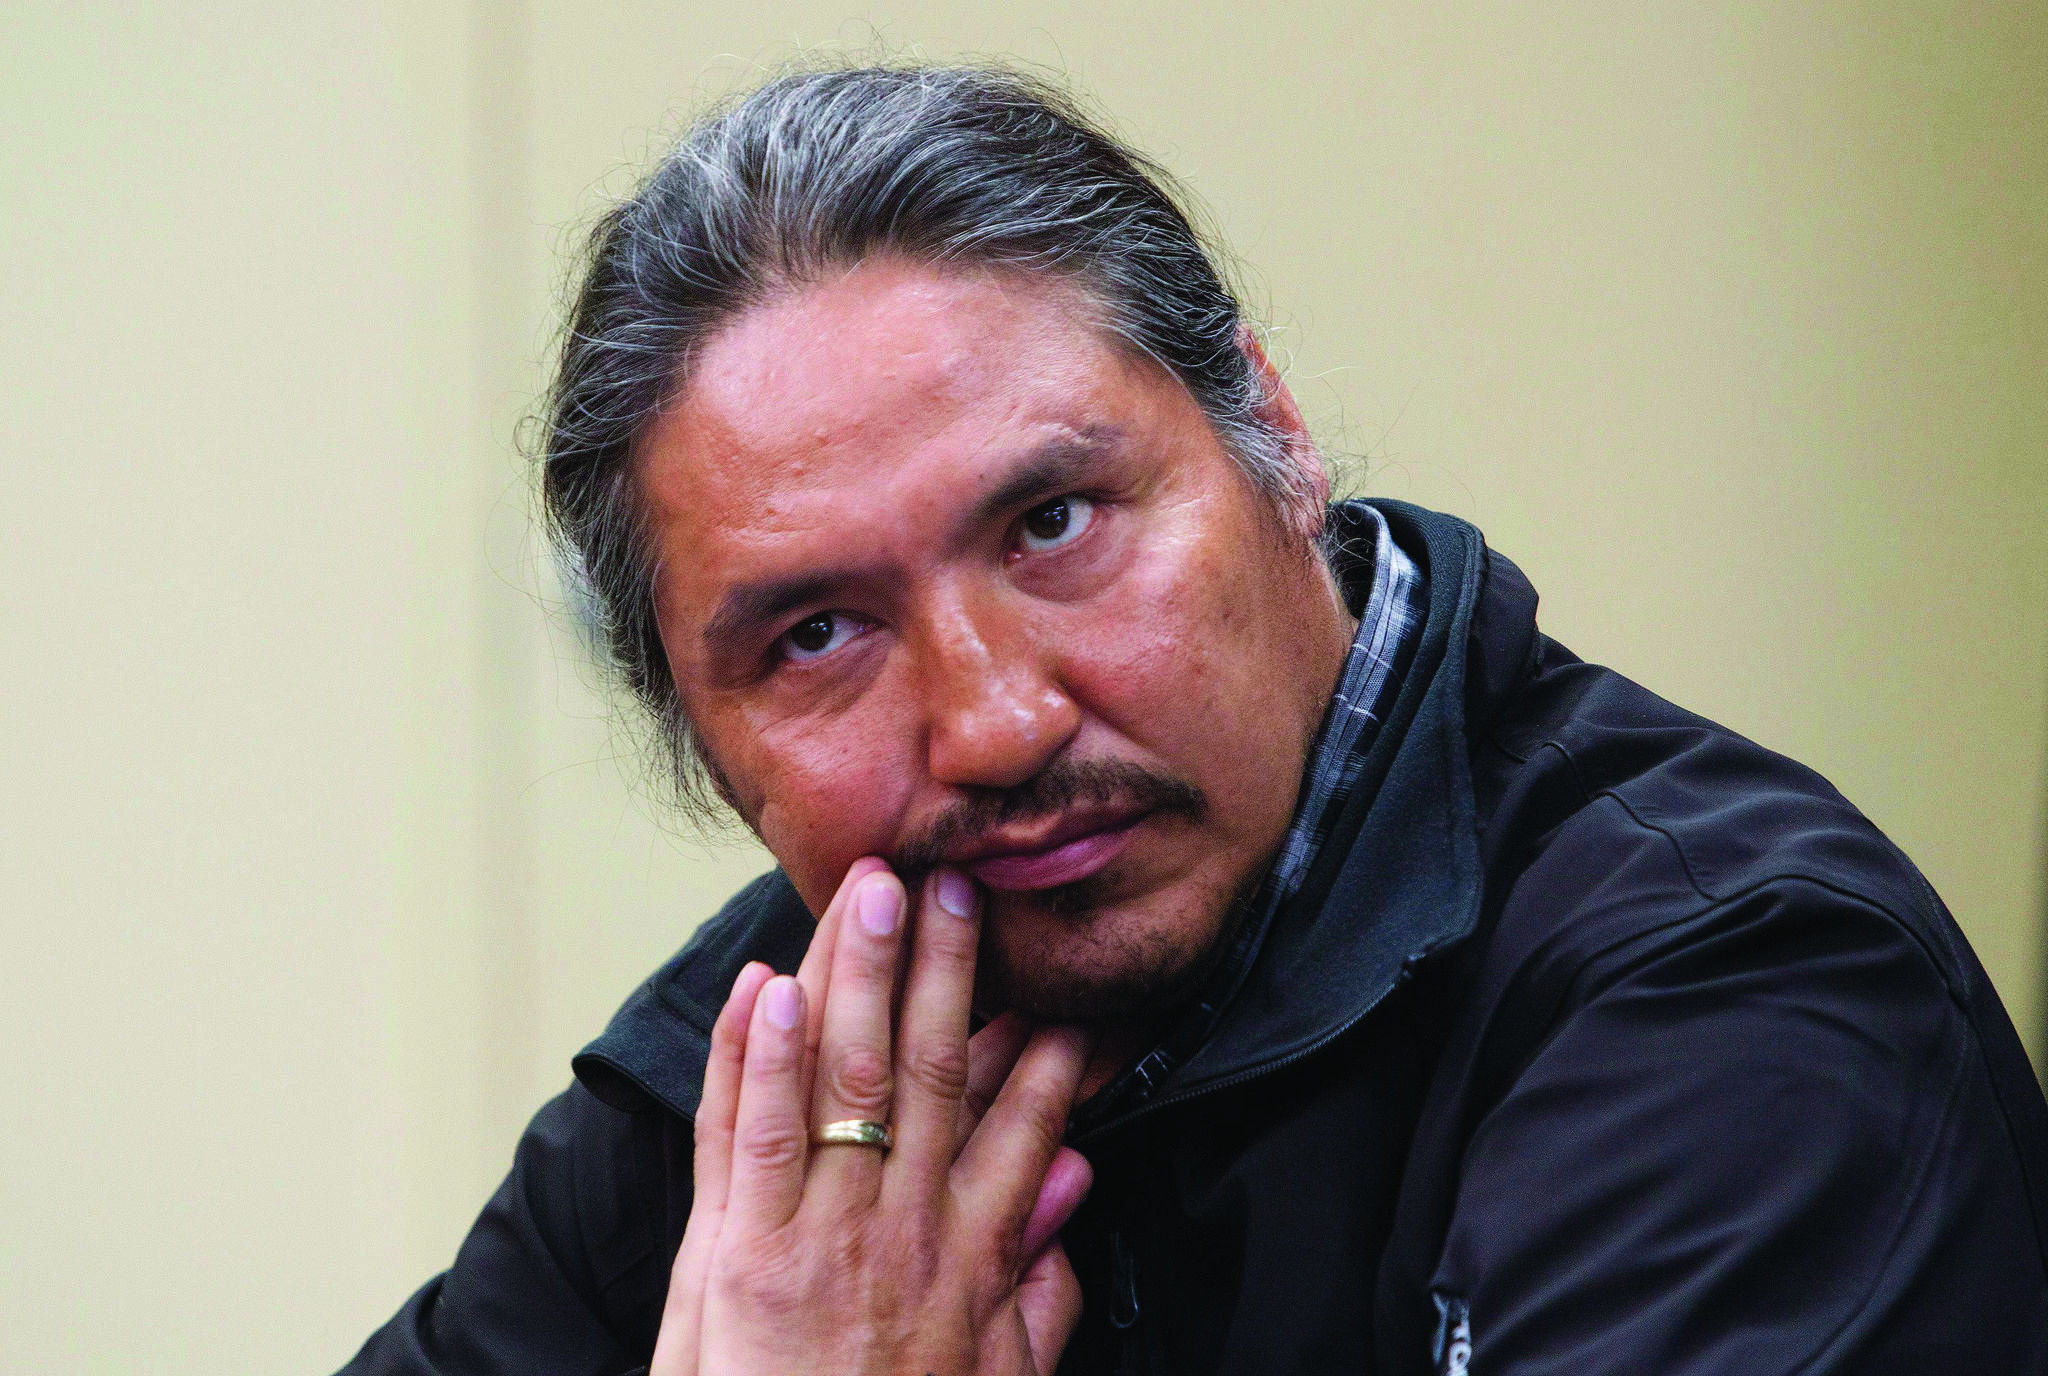 """Chief Allan Adam of the Athabasca Chipewyan First Nation listens as Archbishop Desmond Tutu speaks during a press conference in Fort McMurray, Alta. on Friday May 30, 2014. Adam says ongoing concerns about coerced sterilization of Indigenous women is nothing short of a """"crisis"""" and he wants to see a public inquiry into the allegations. THE CANADIAN PRESS/Jason Franson"""